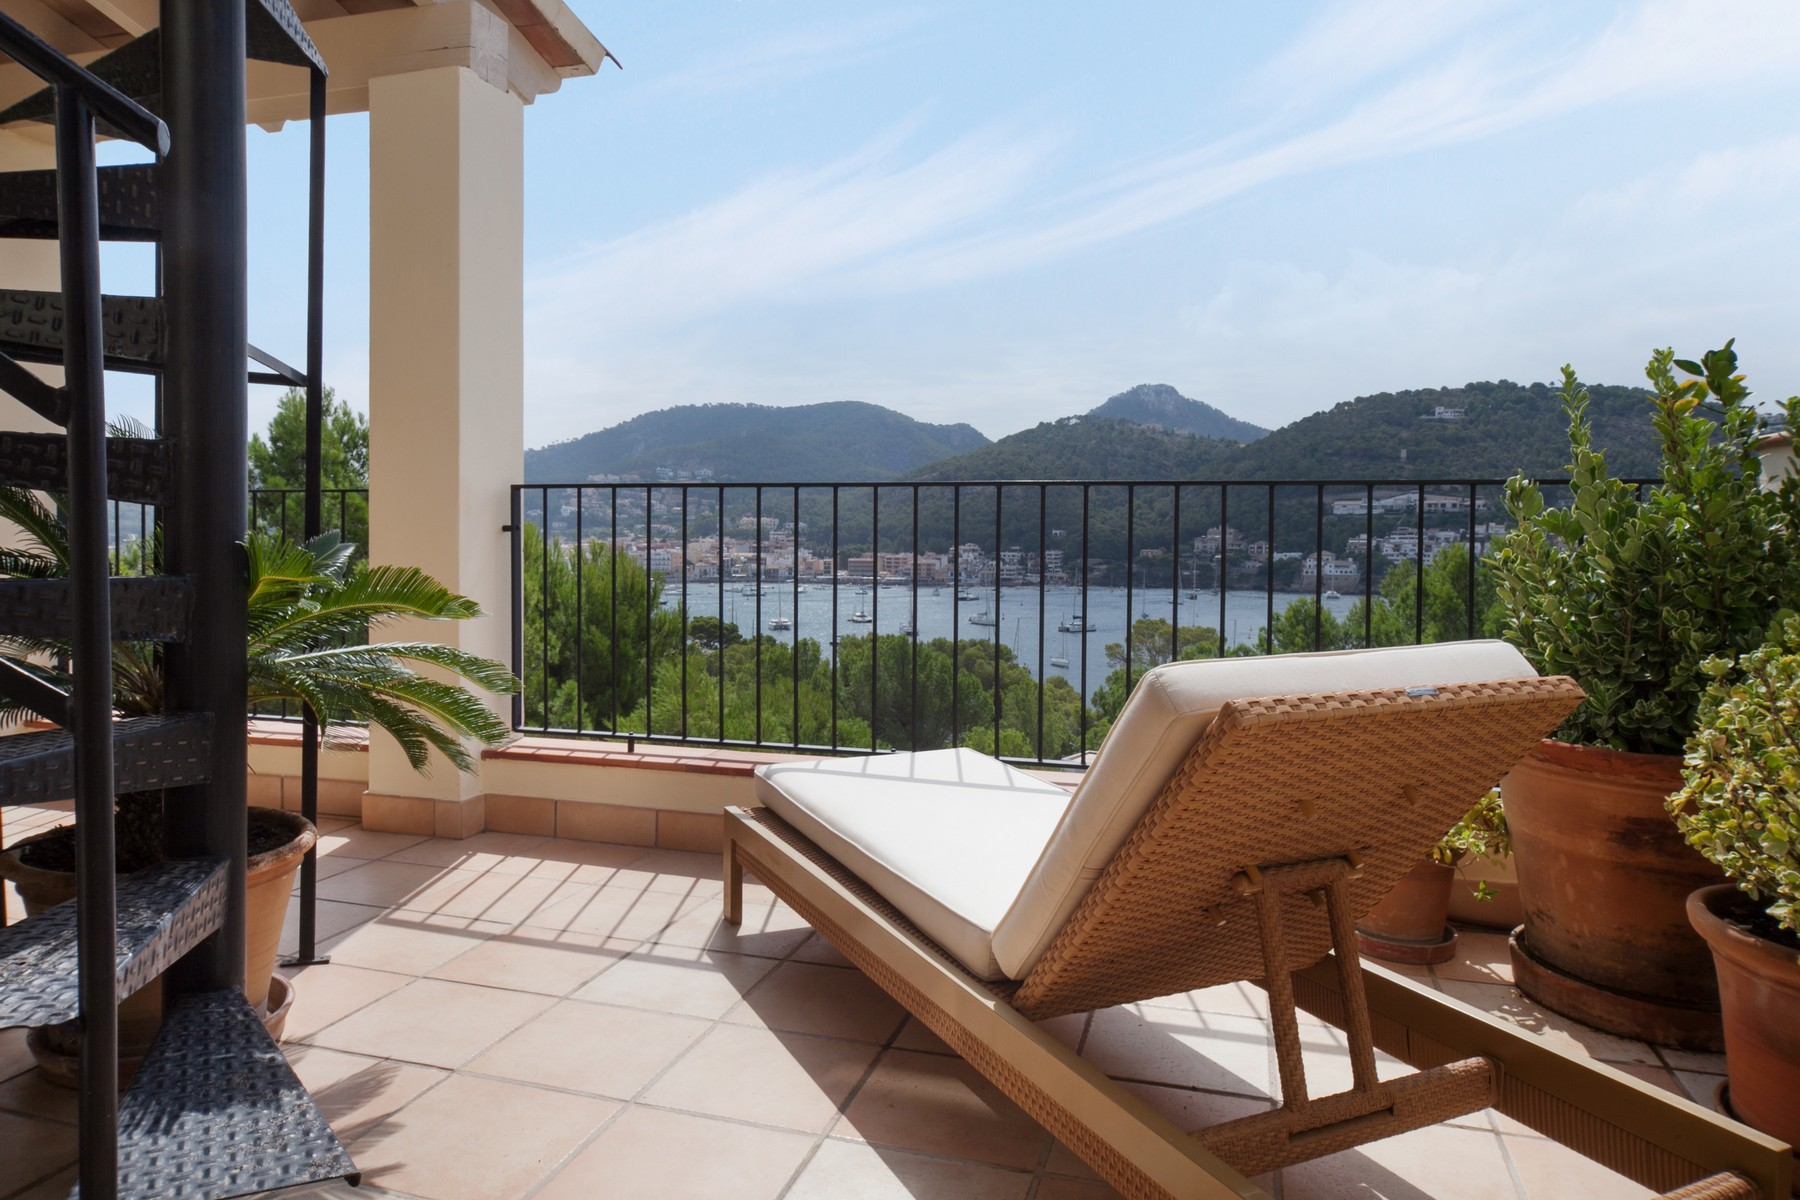 Appartement pour l Vente à Penthouse with ideal location in Port Andratx Port Andratx, Majorque, 07157 Espagne